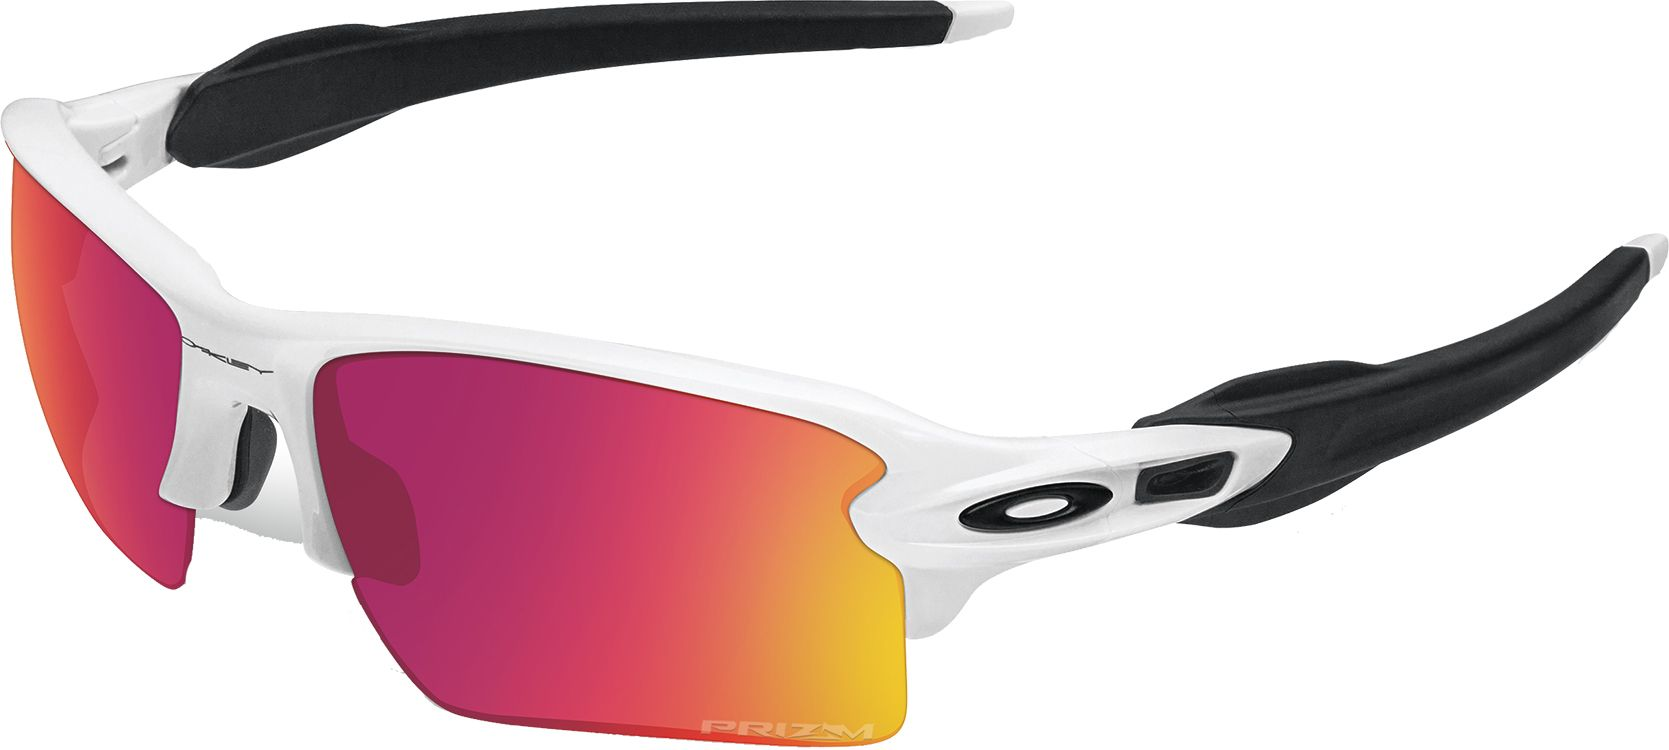 oakley outlet lancaster  product image oakley flak 2.0 xl baseball sunglasses